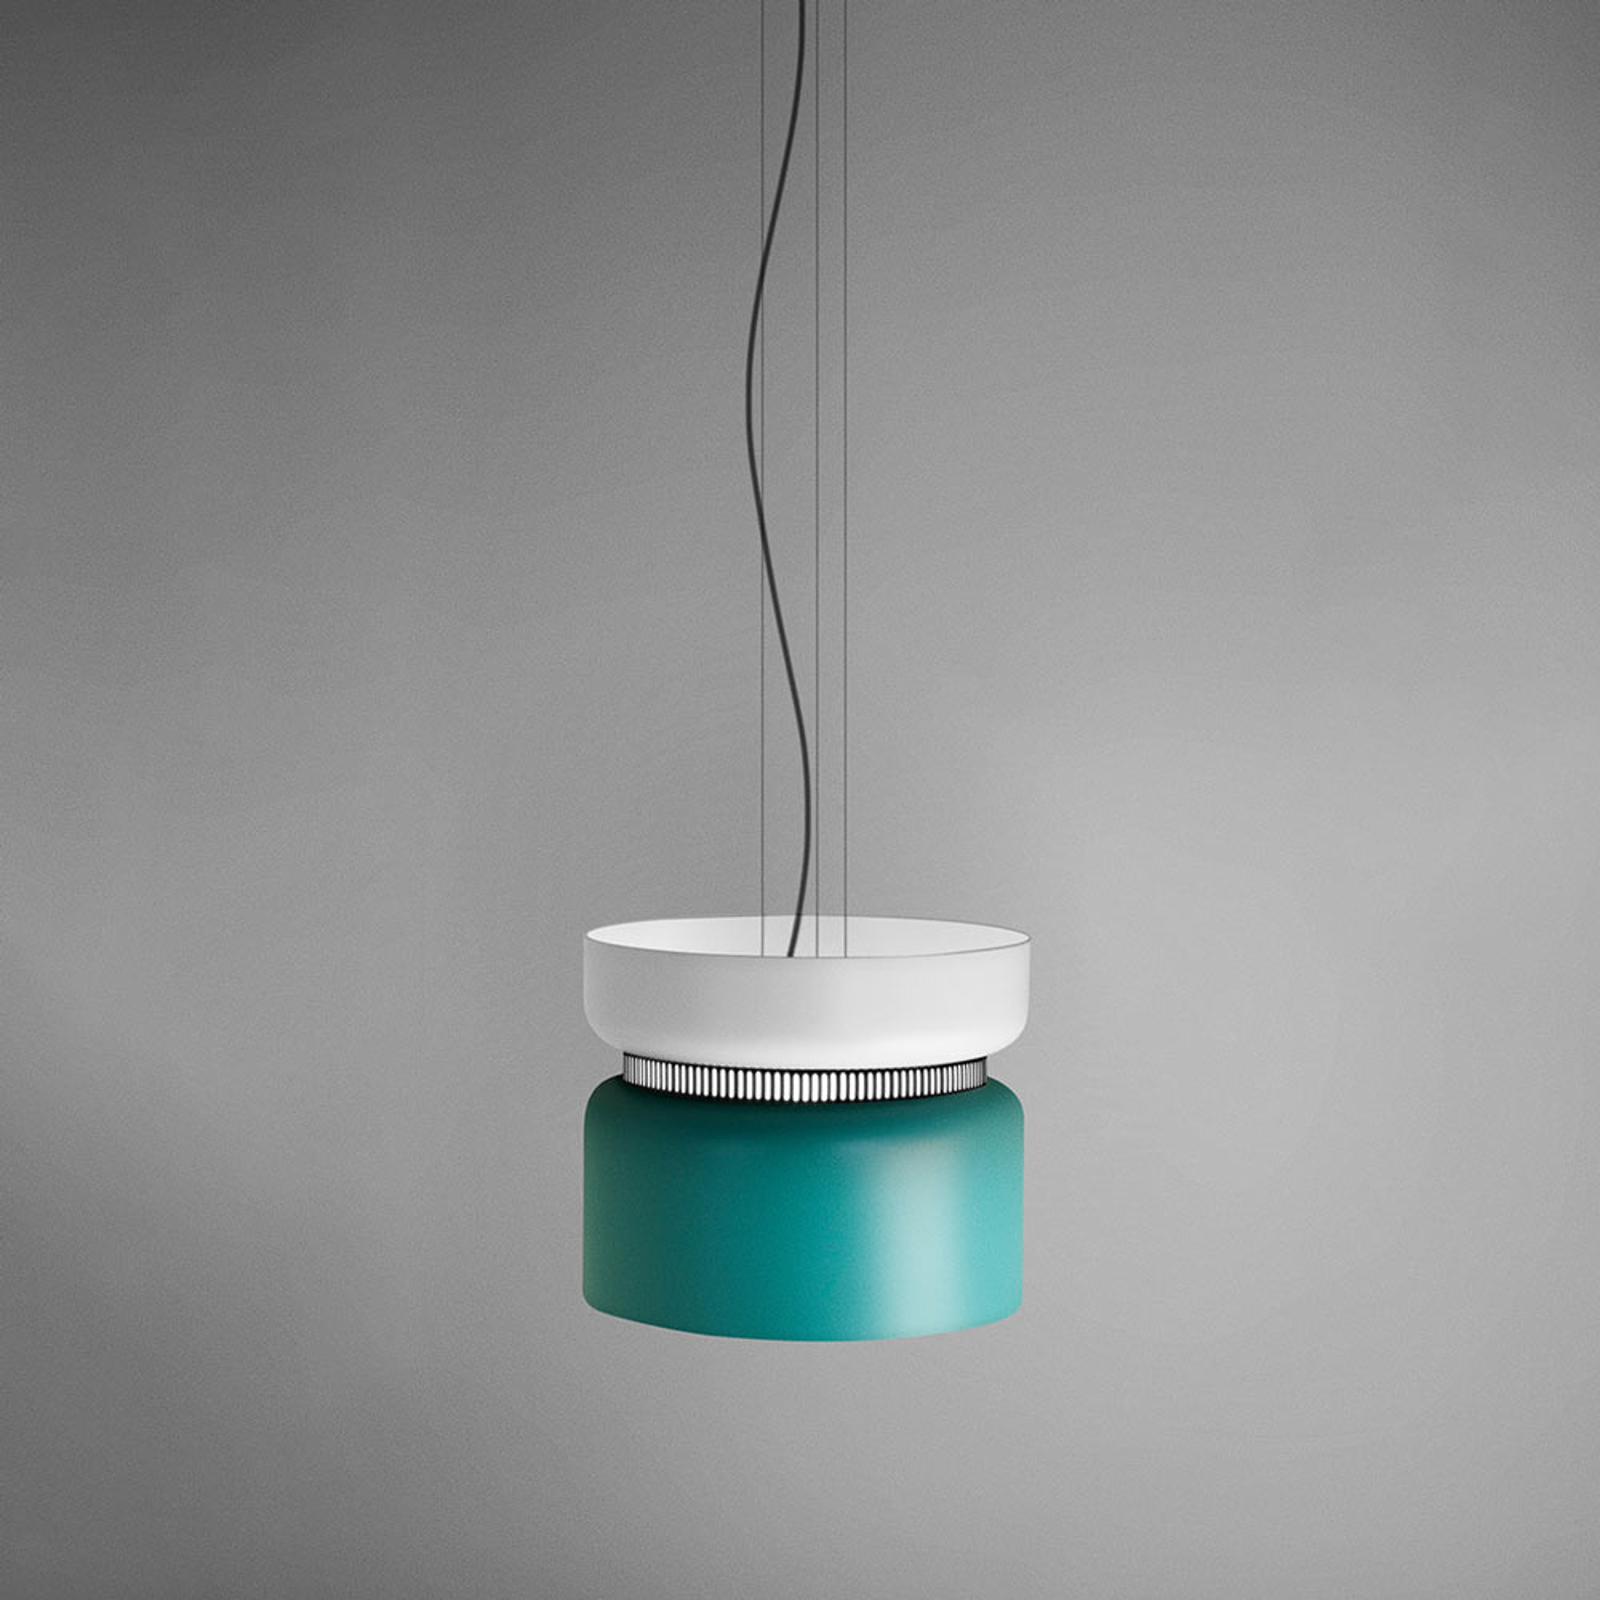 Suspension LED Aspen S blanc-turquoise 40 cm